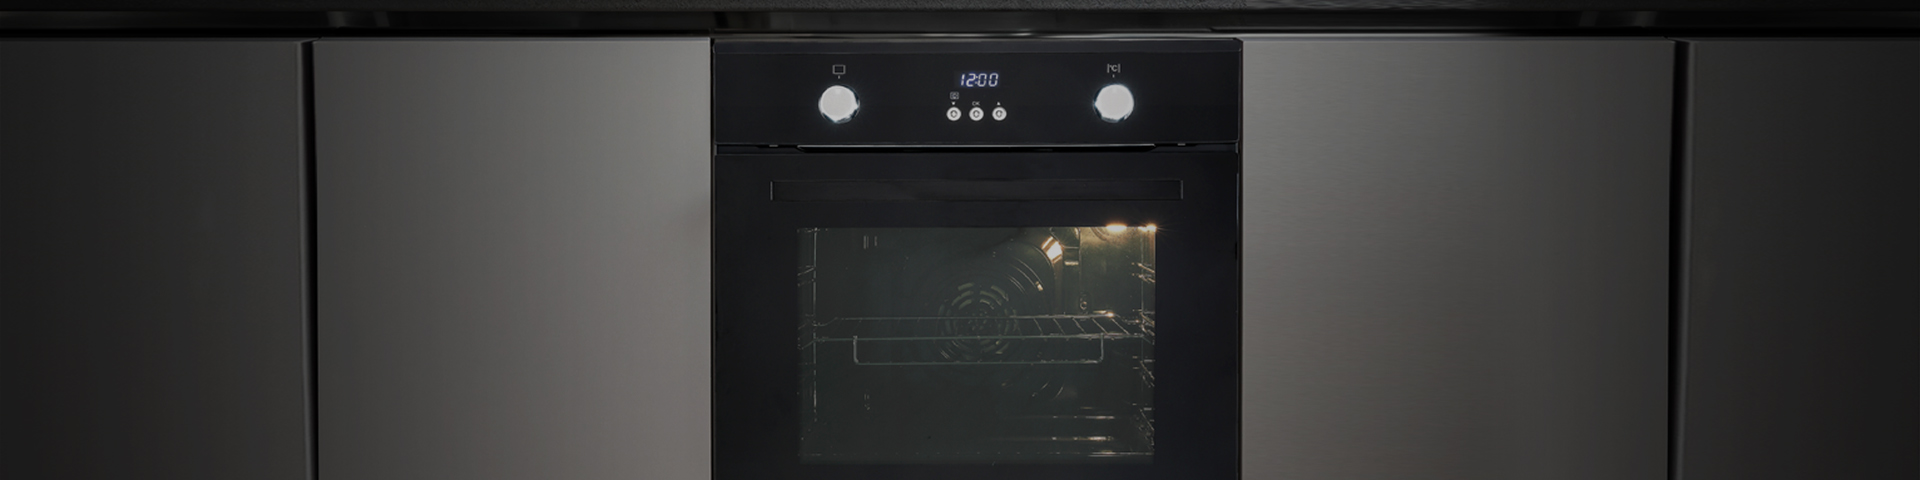 73L-Electric-Oven-banne